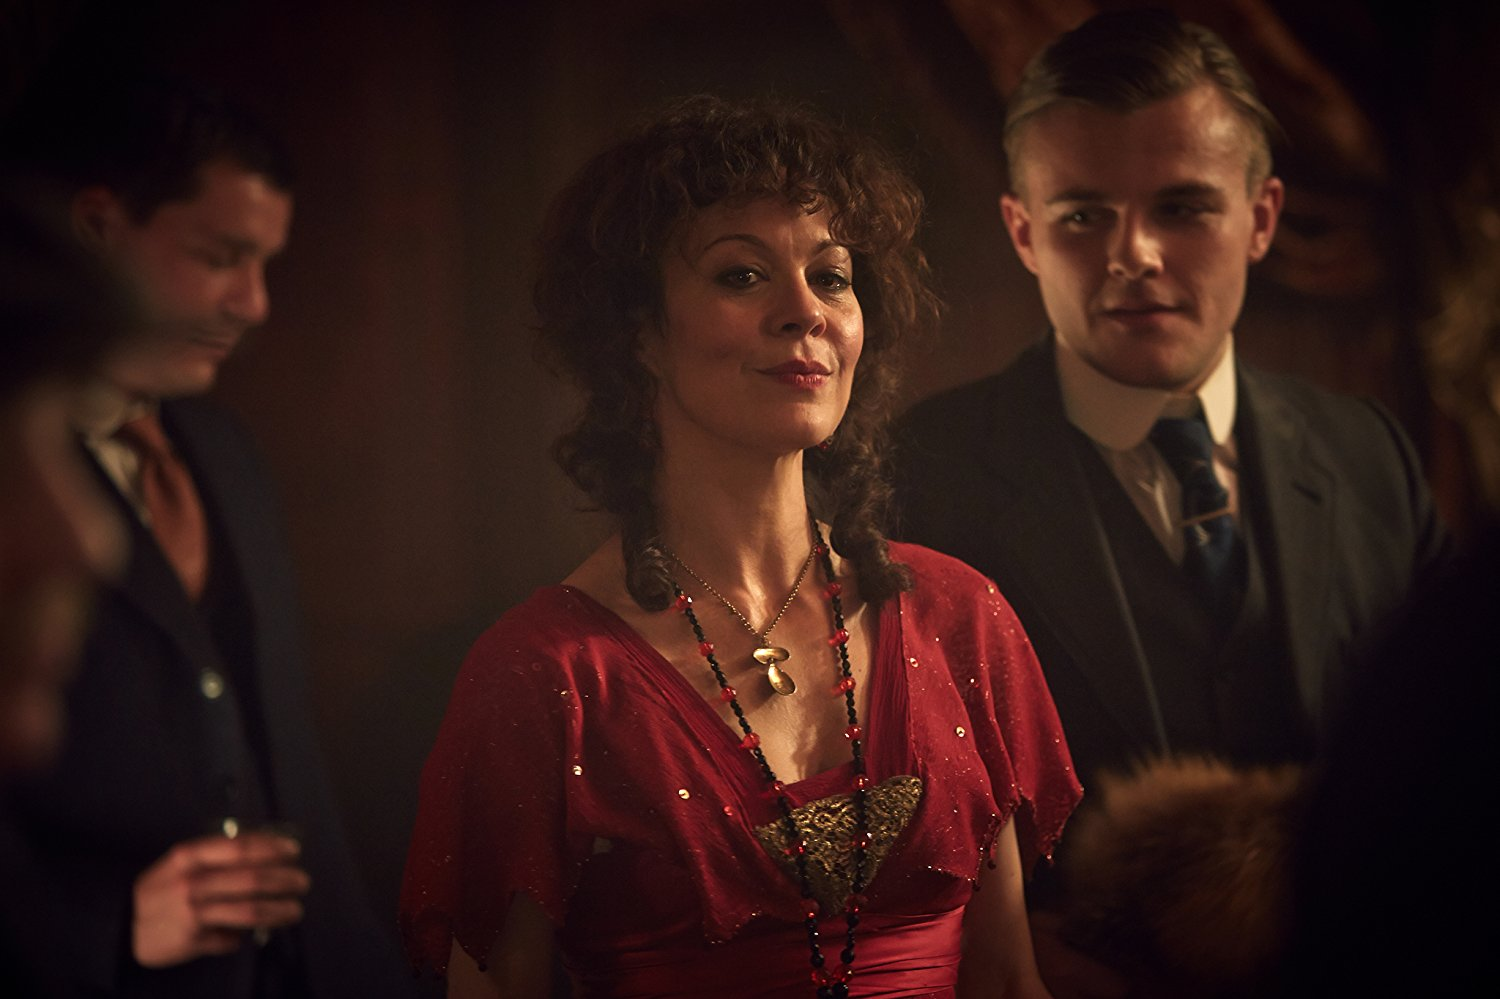 A picture of Helen McCrory as Aunt Polly in the Peaky Blinders. She is dressed in a red Gypsy dress and her dark hair durls around her face.